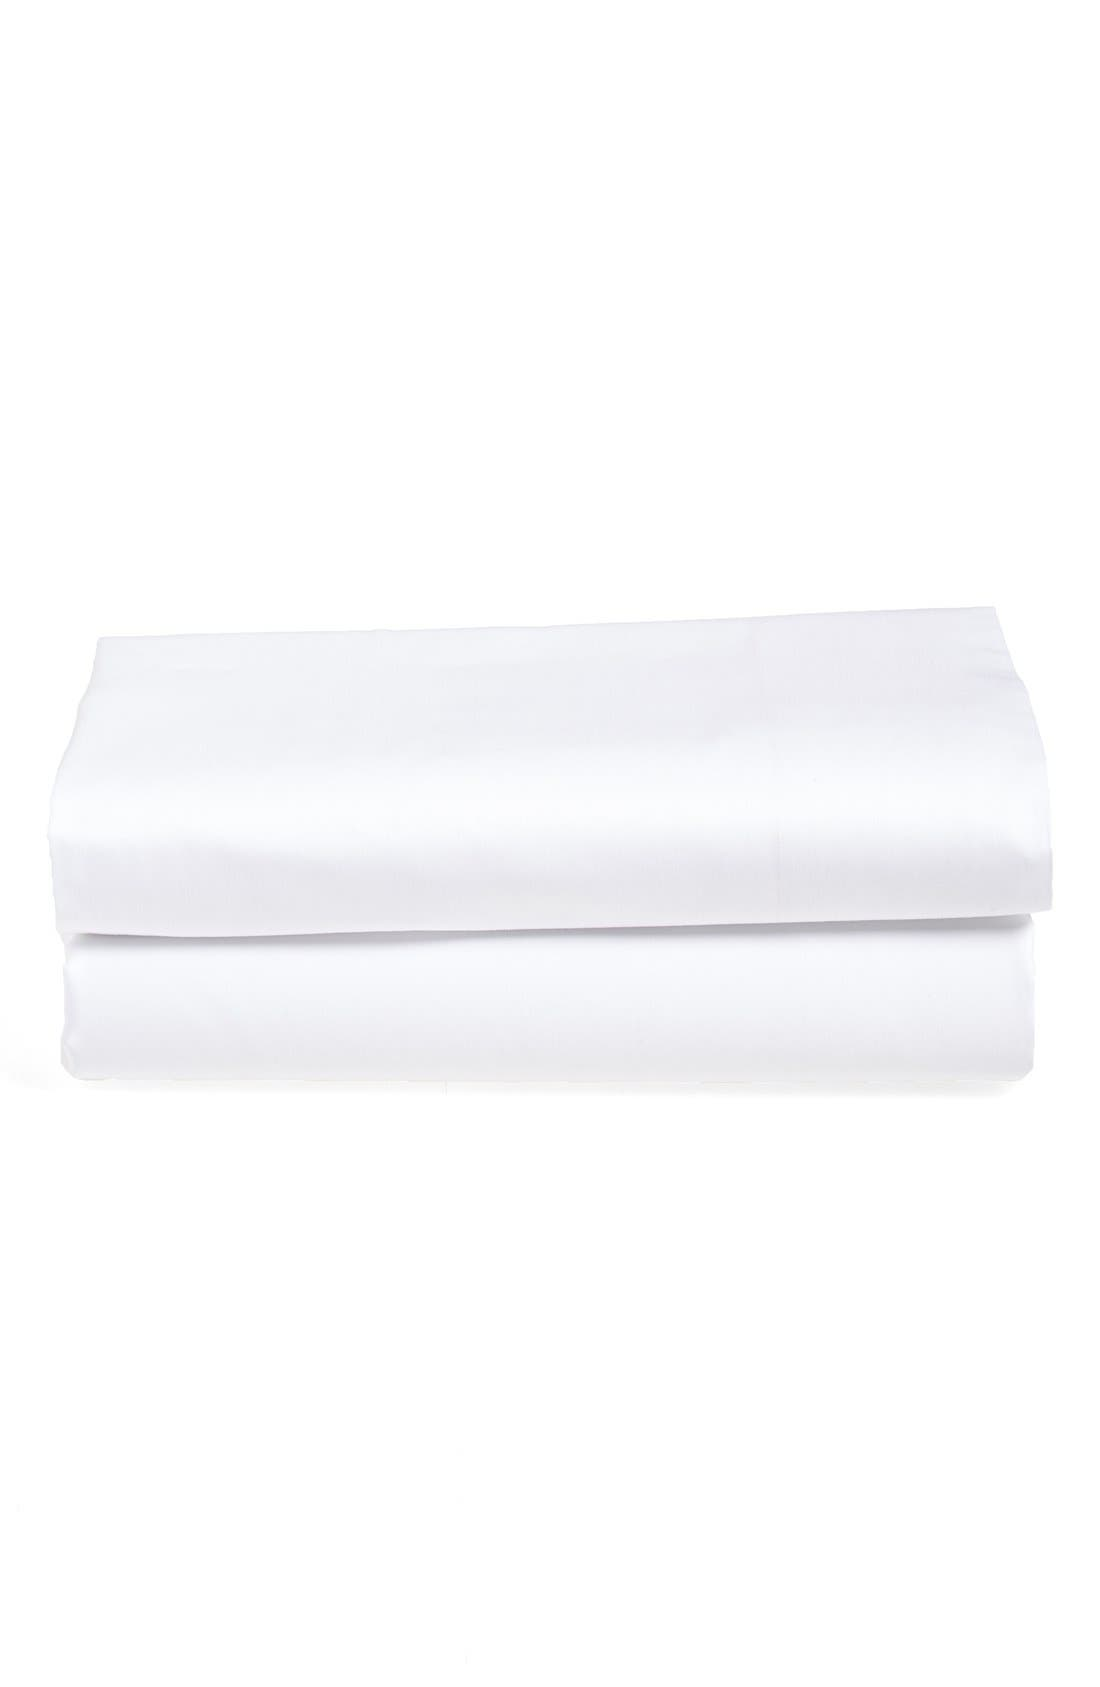 Main Image - Westin At Home 'Ultra Luxe' 600 Thread Count Flat Sheet